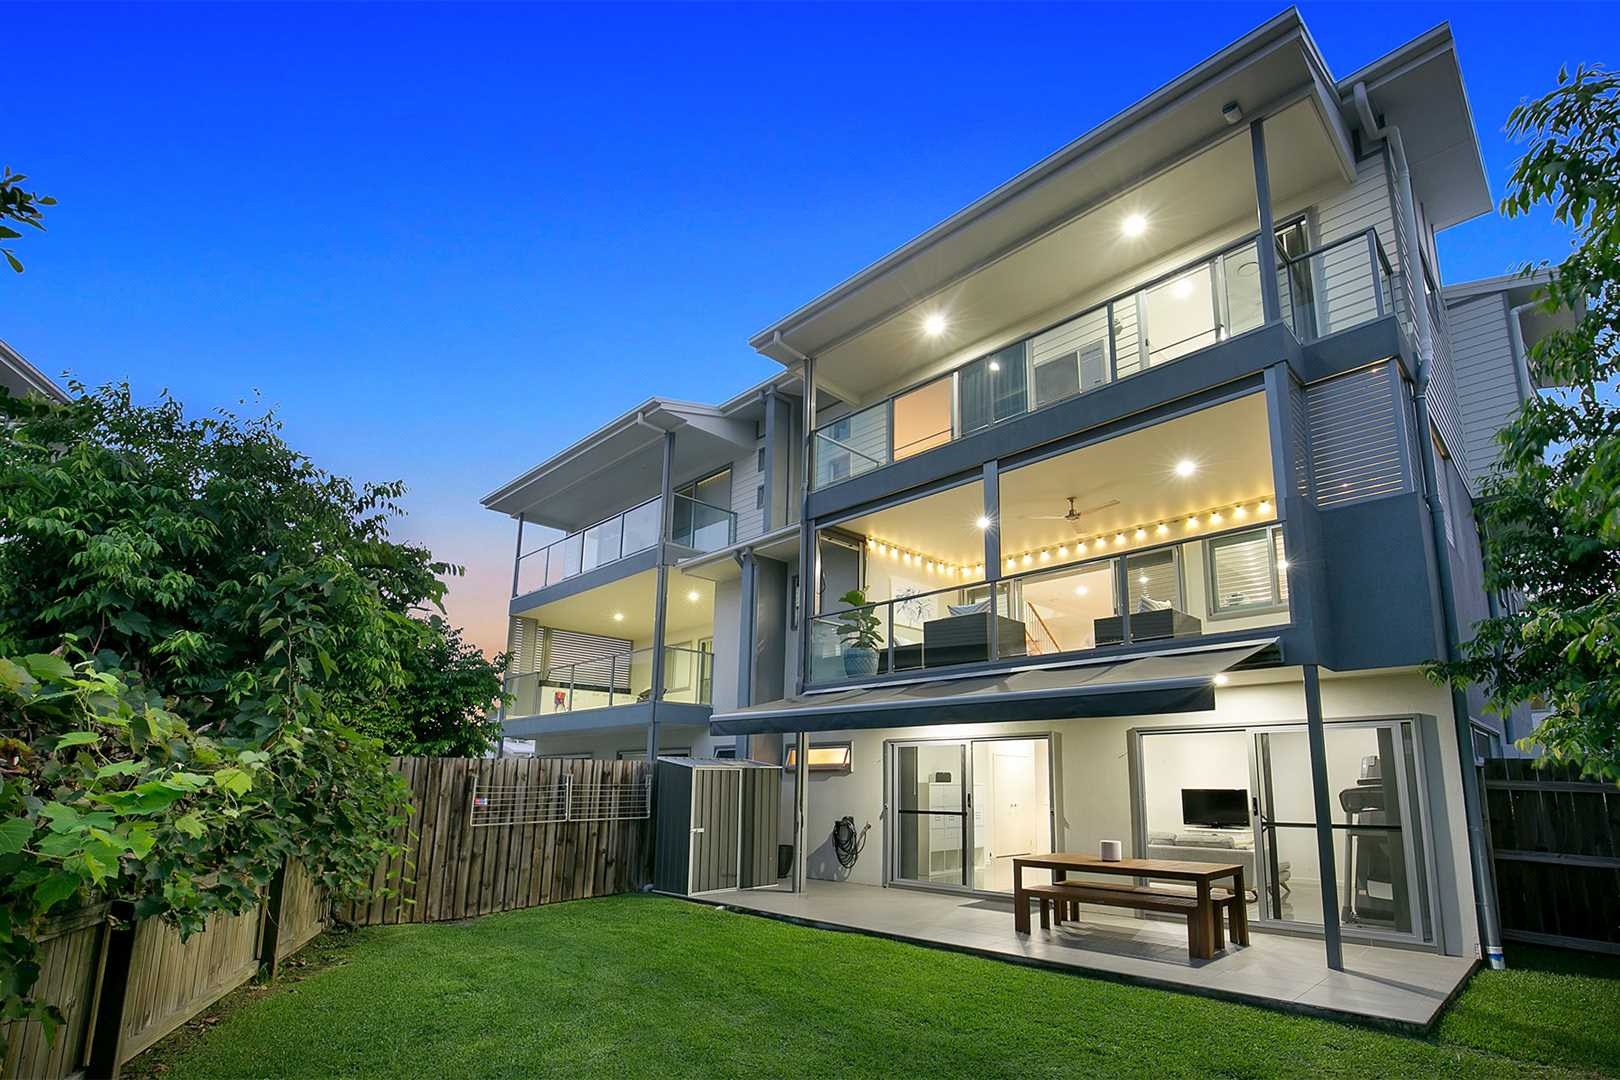 298m2 of Luxury Living Over 3 Levels